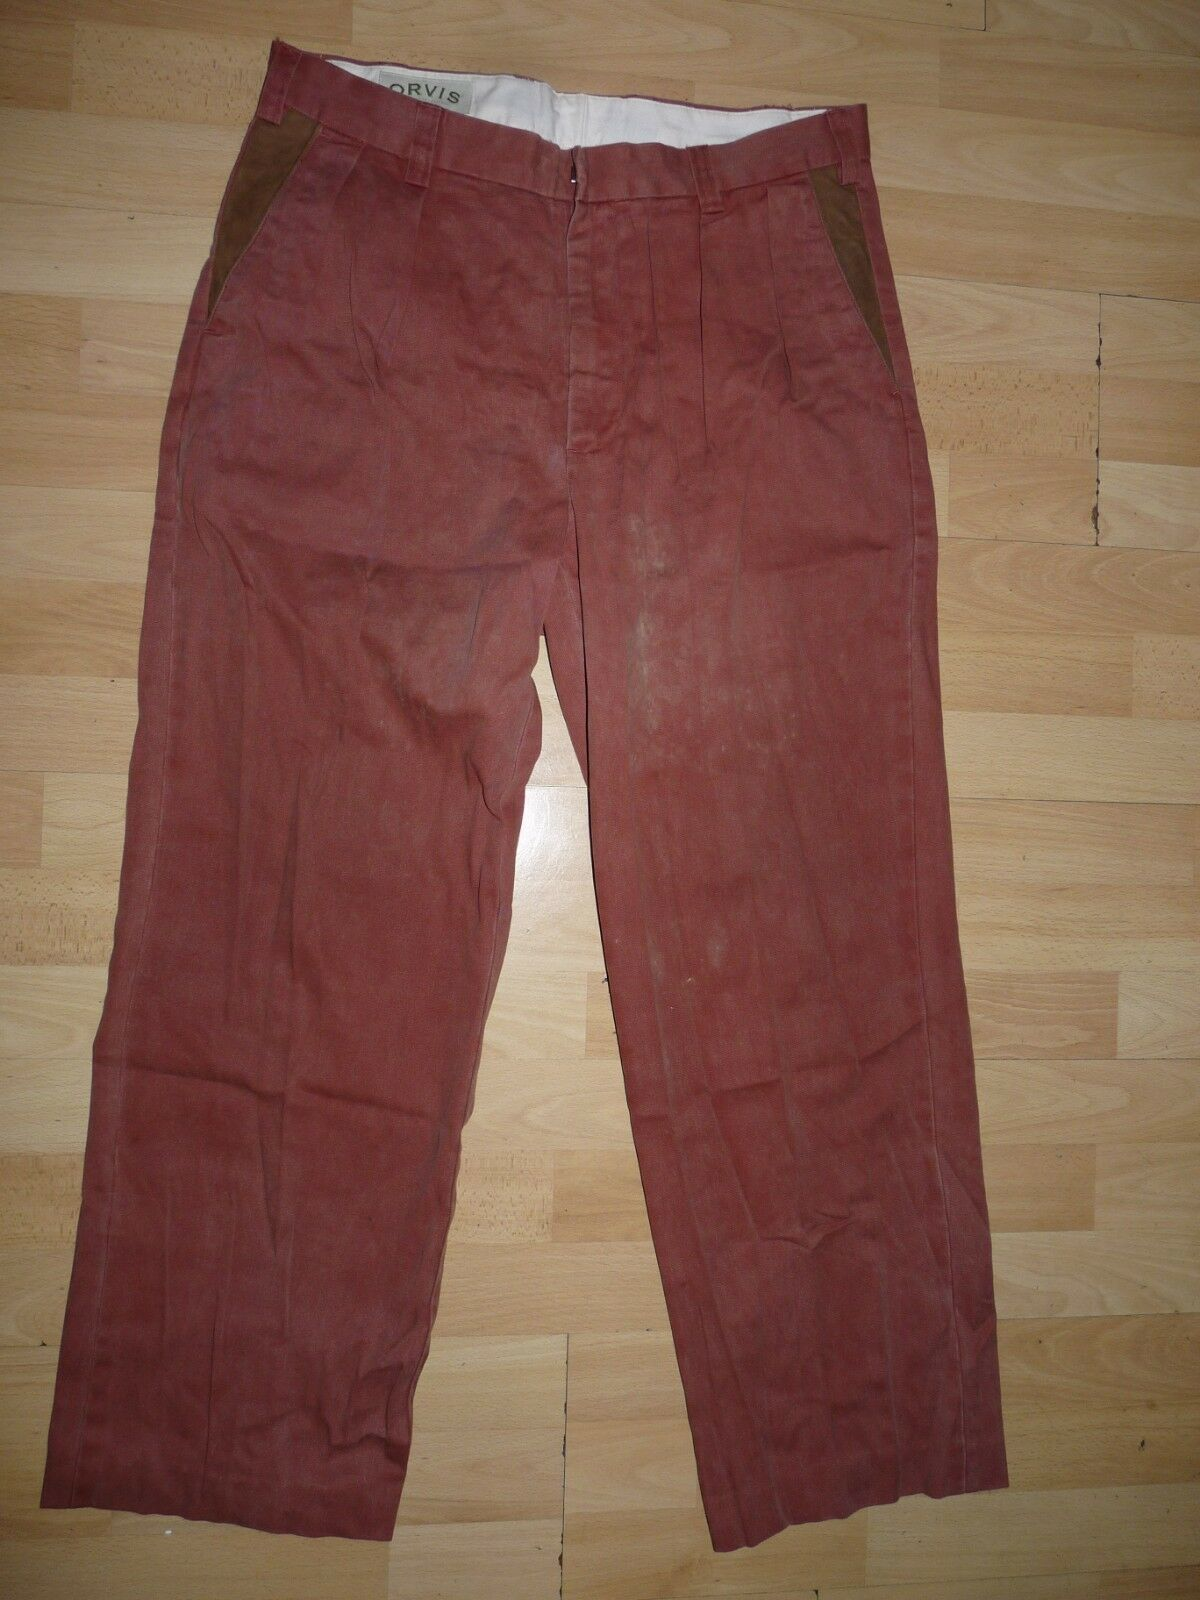 ORVIS soft men's trousers outdoor field casual fishing pants W34 100% cotton (24